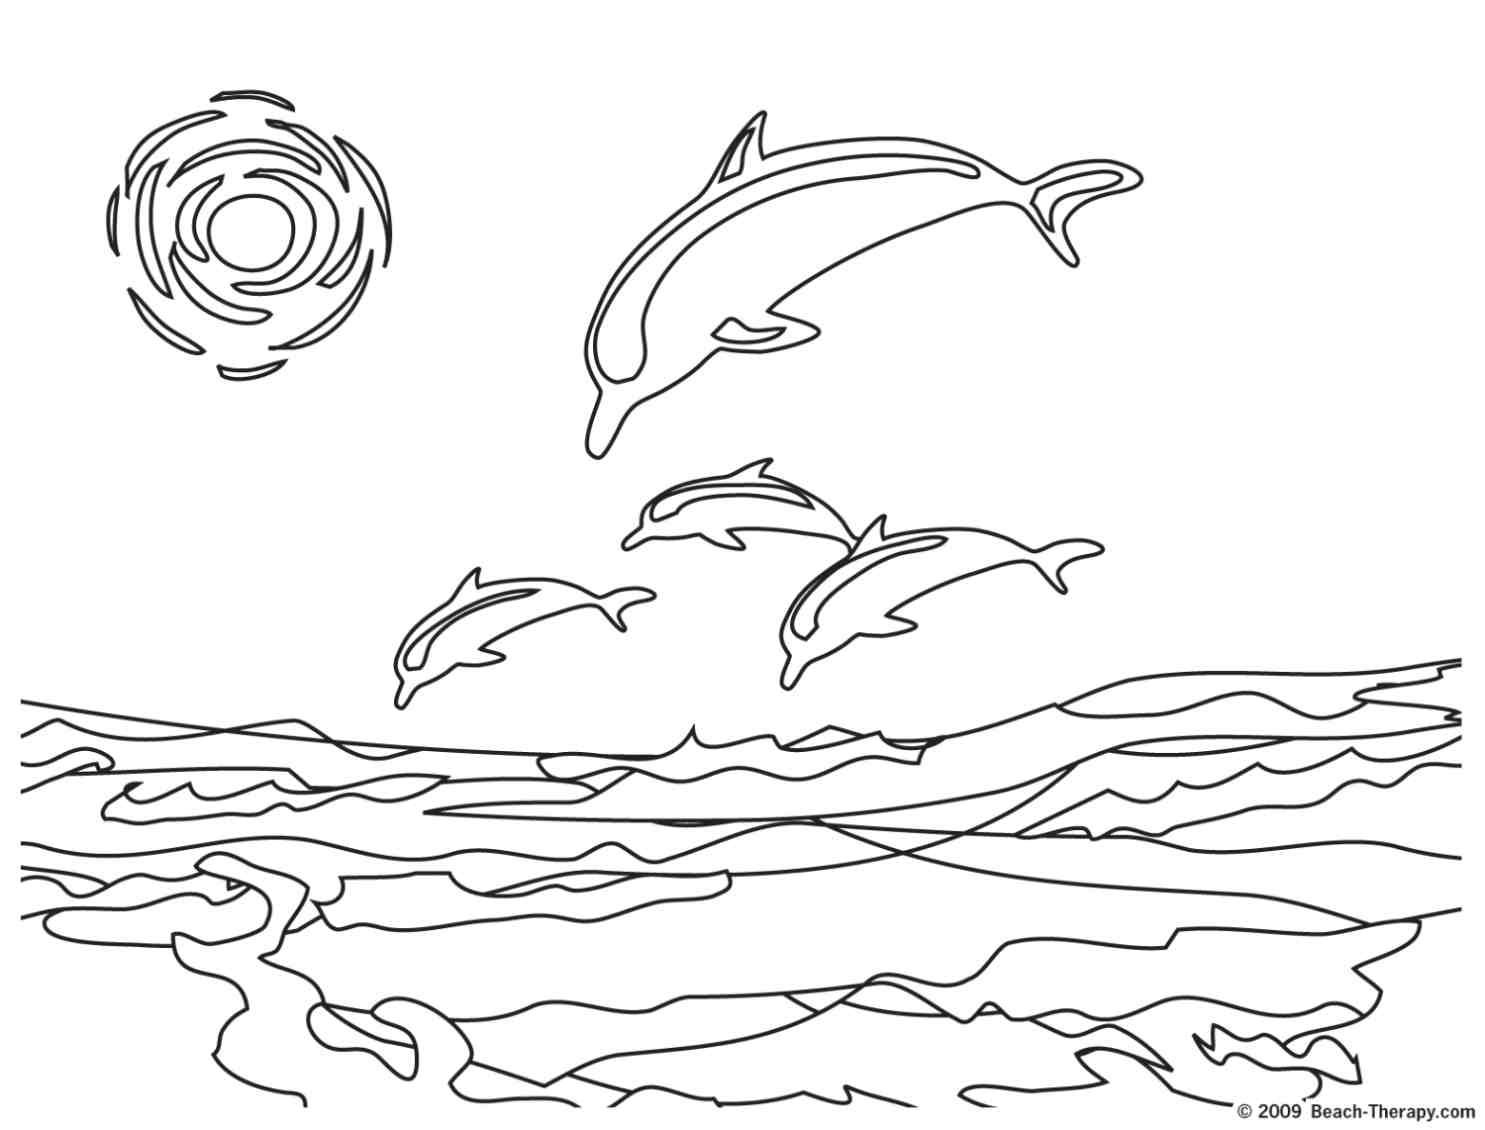 Dolphin picture to color for kids. My son loves dolphins! | Art and ...